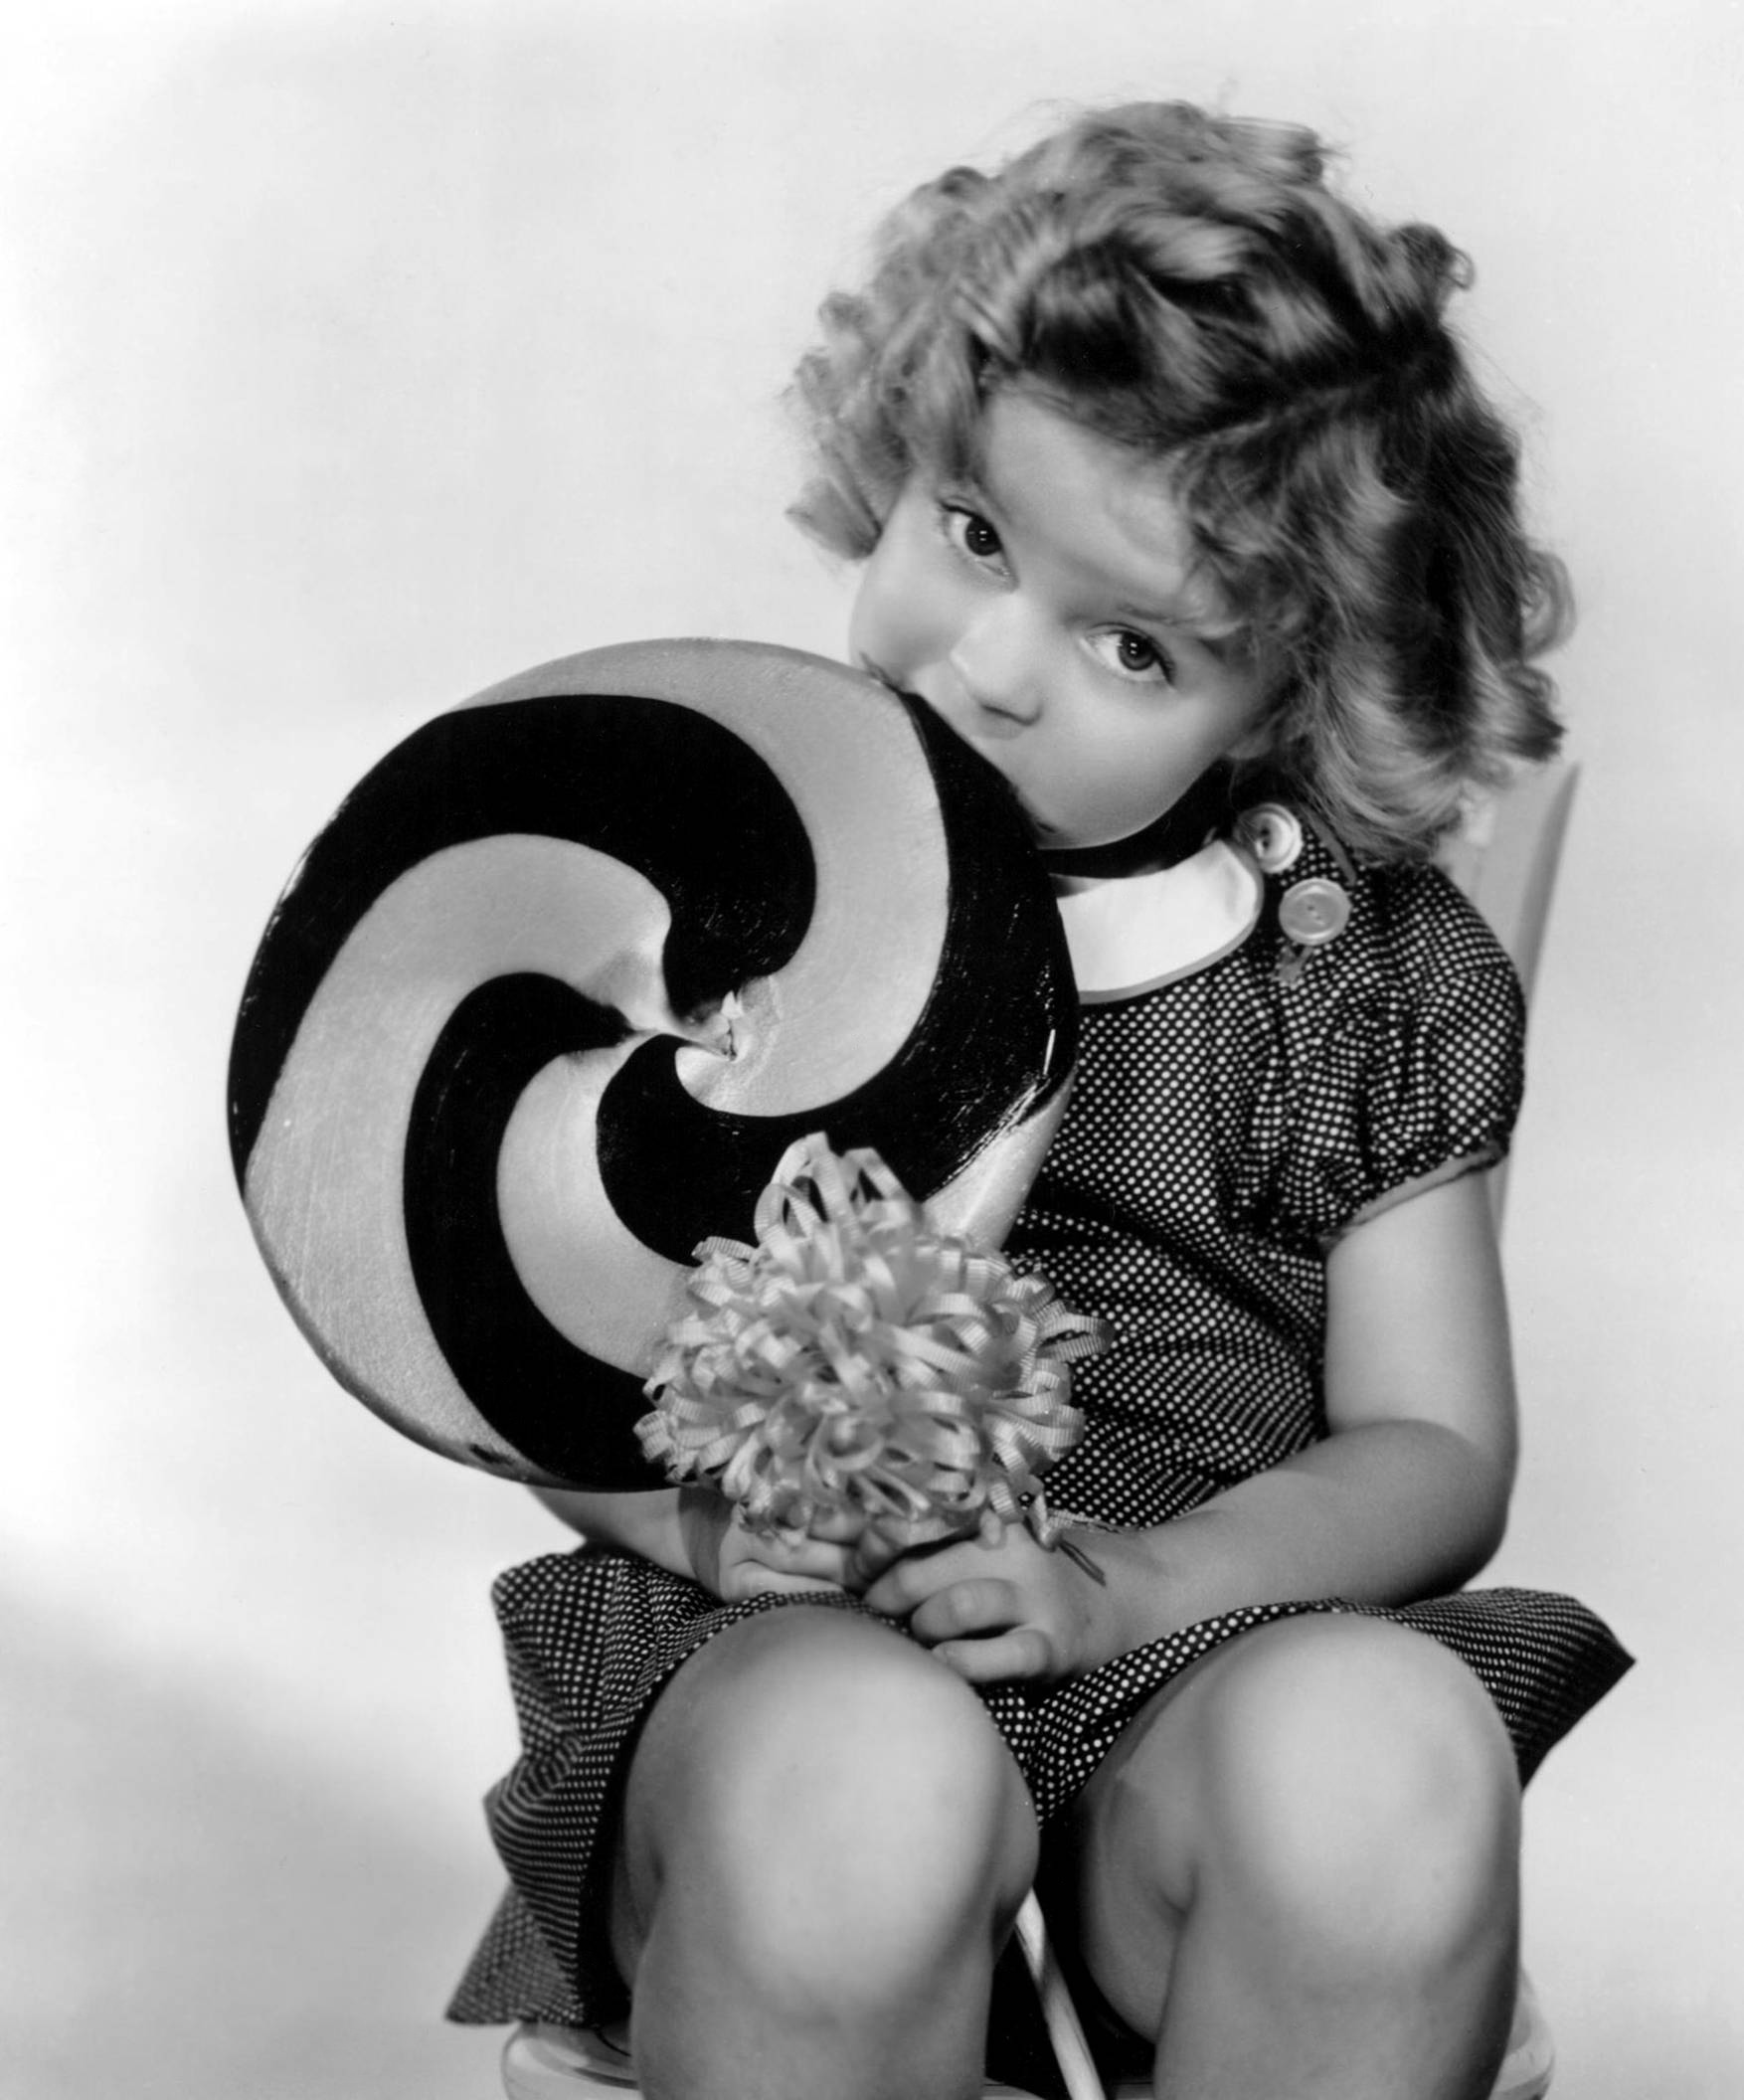 1754x2112 - Shirley Temple Wallpapers 20